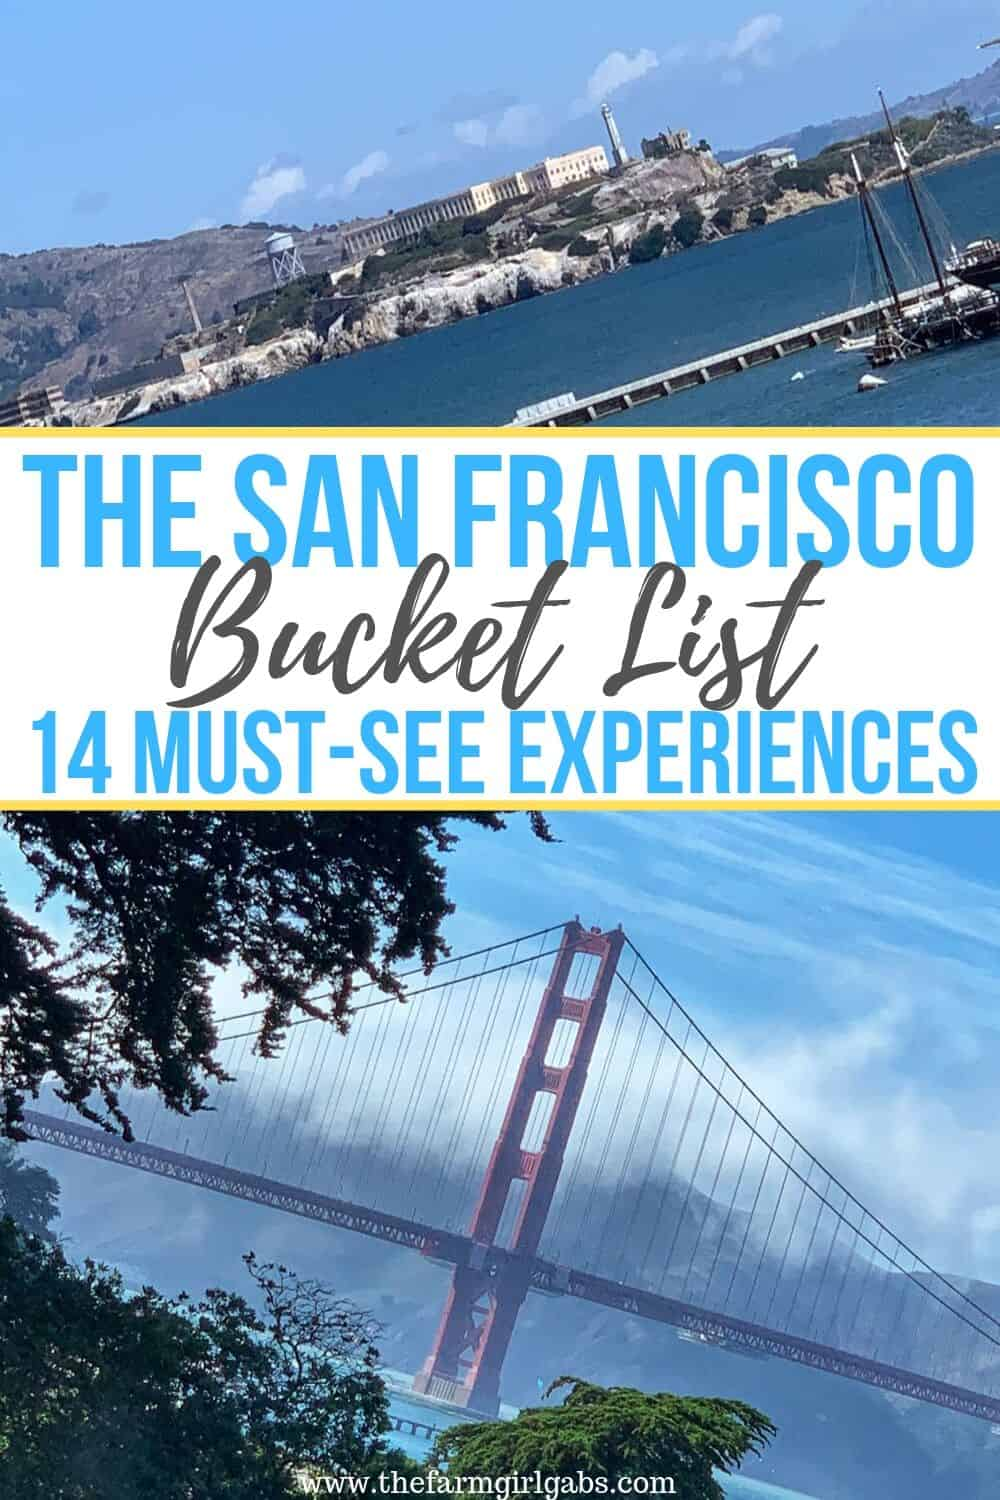 San Francisco has so many things to experience. Check out these 14 Must-Do Experiences in San Francisco that you won't want to miss out on while visiting this great city. #Sanfrancisco #GoldenGateBridge #TravelTips